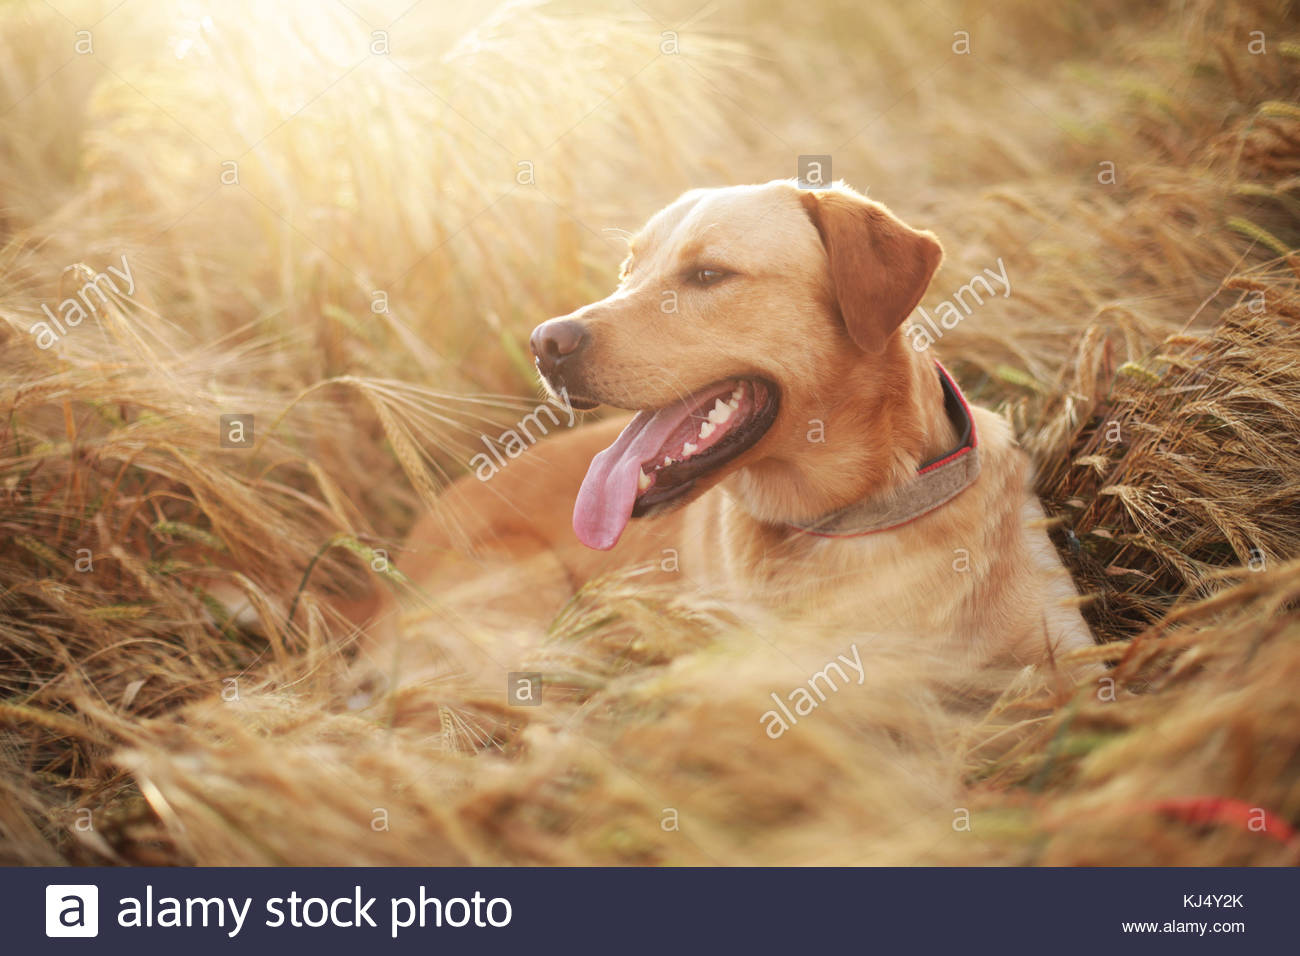 Beautiful dog portrait in a wheat field - Stock Image